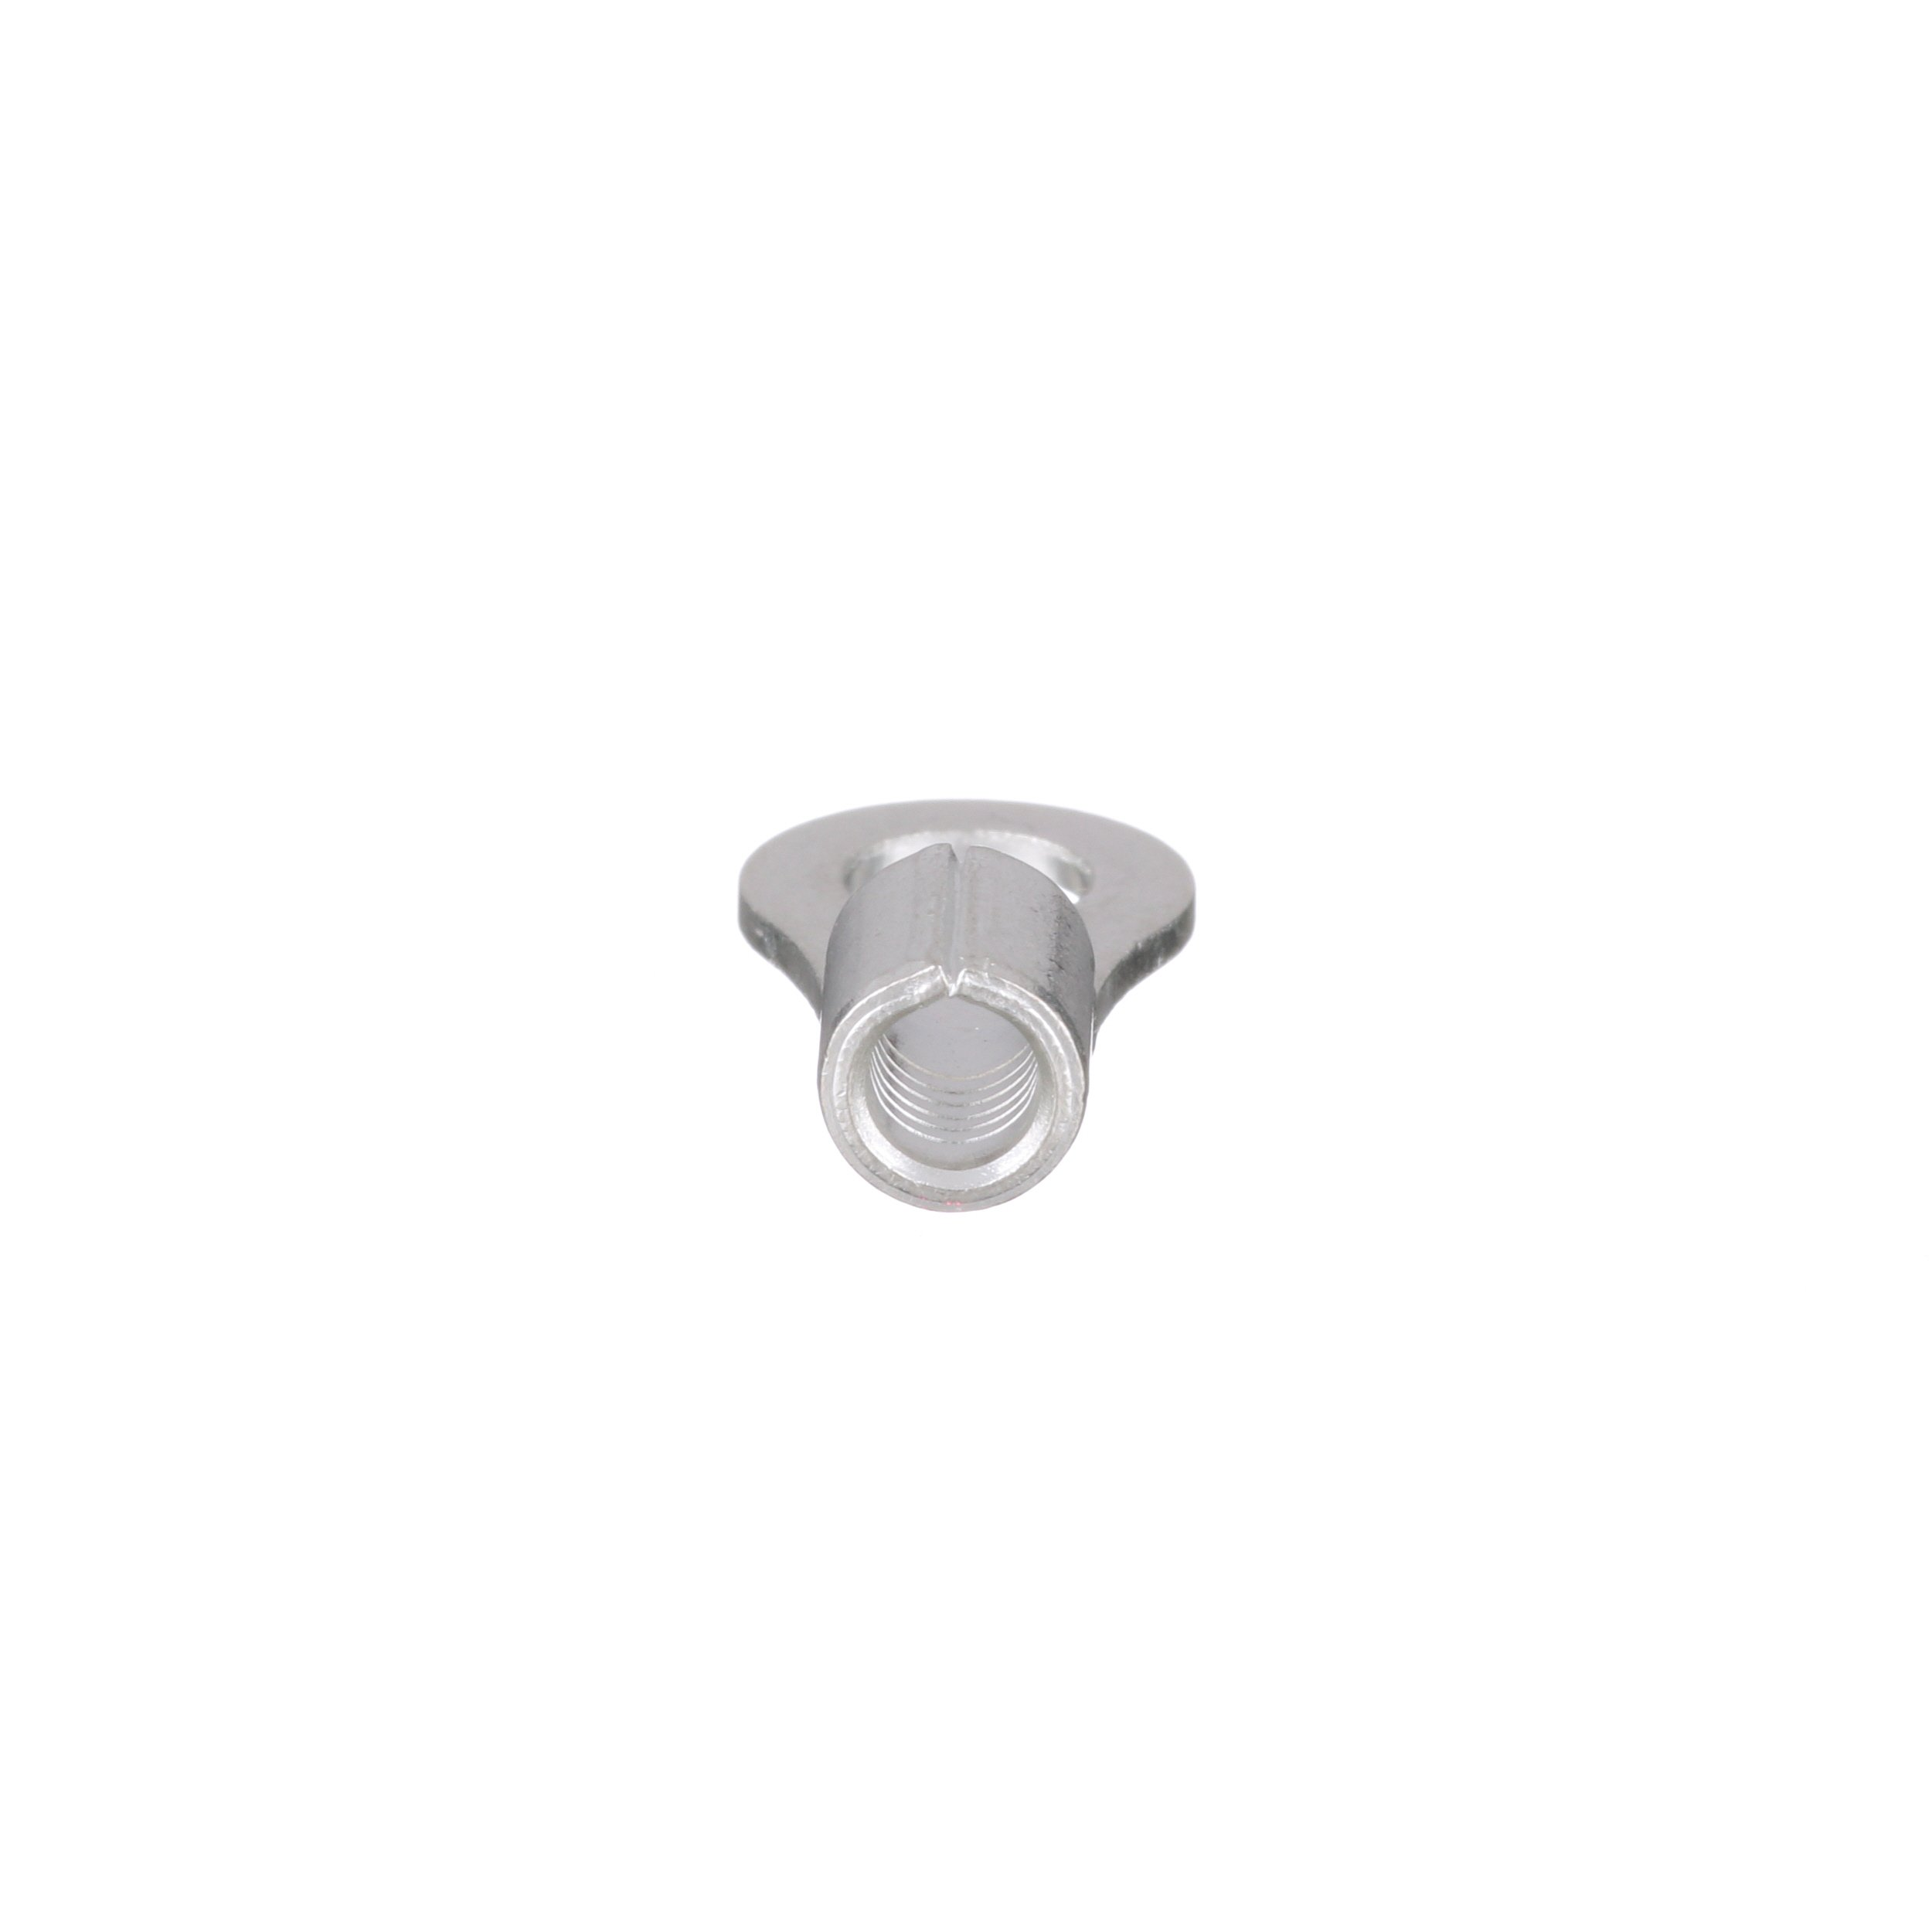 Panduit P22-6R-C Ring Terminal, Non-Insulated, 26 - 22 AWG, #6 Stud Size (100-Pack) by Panduit